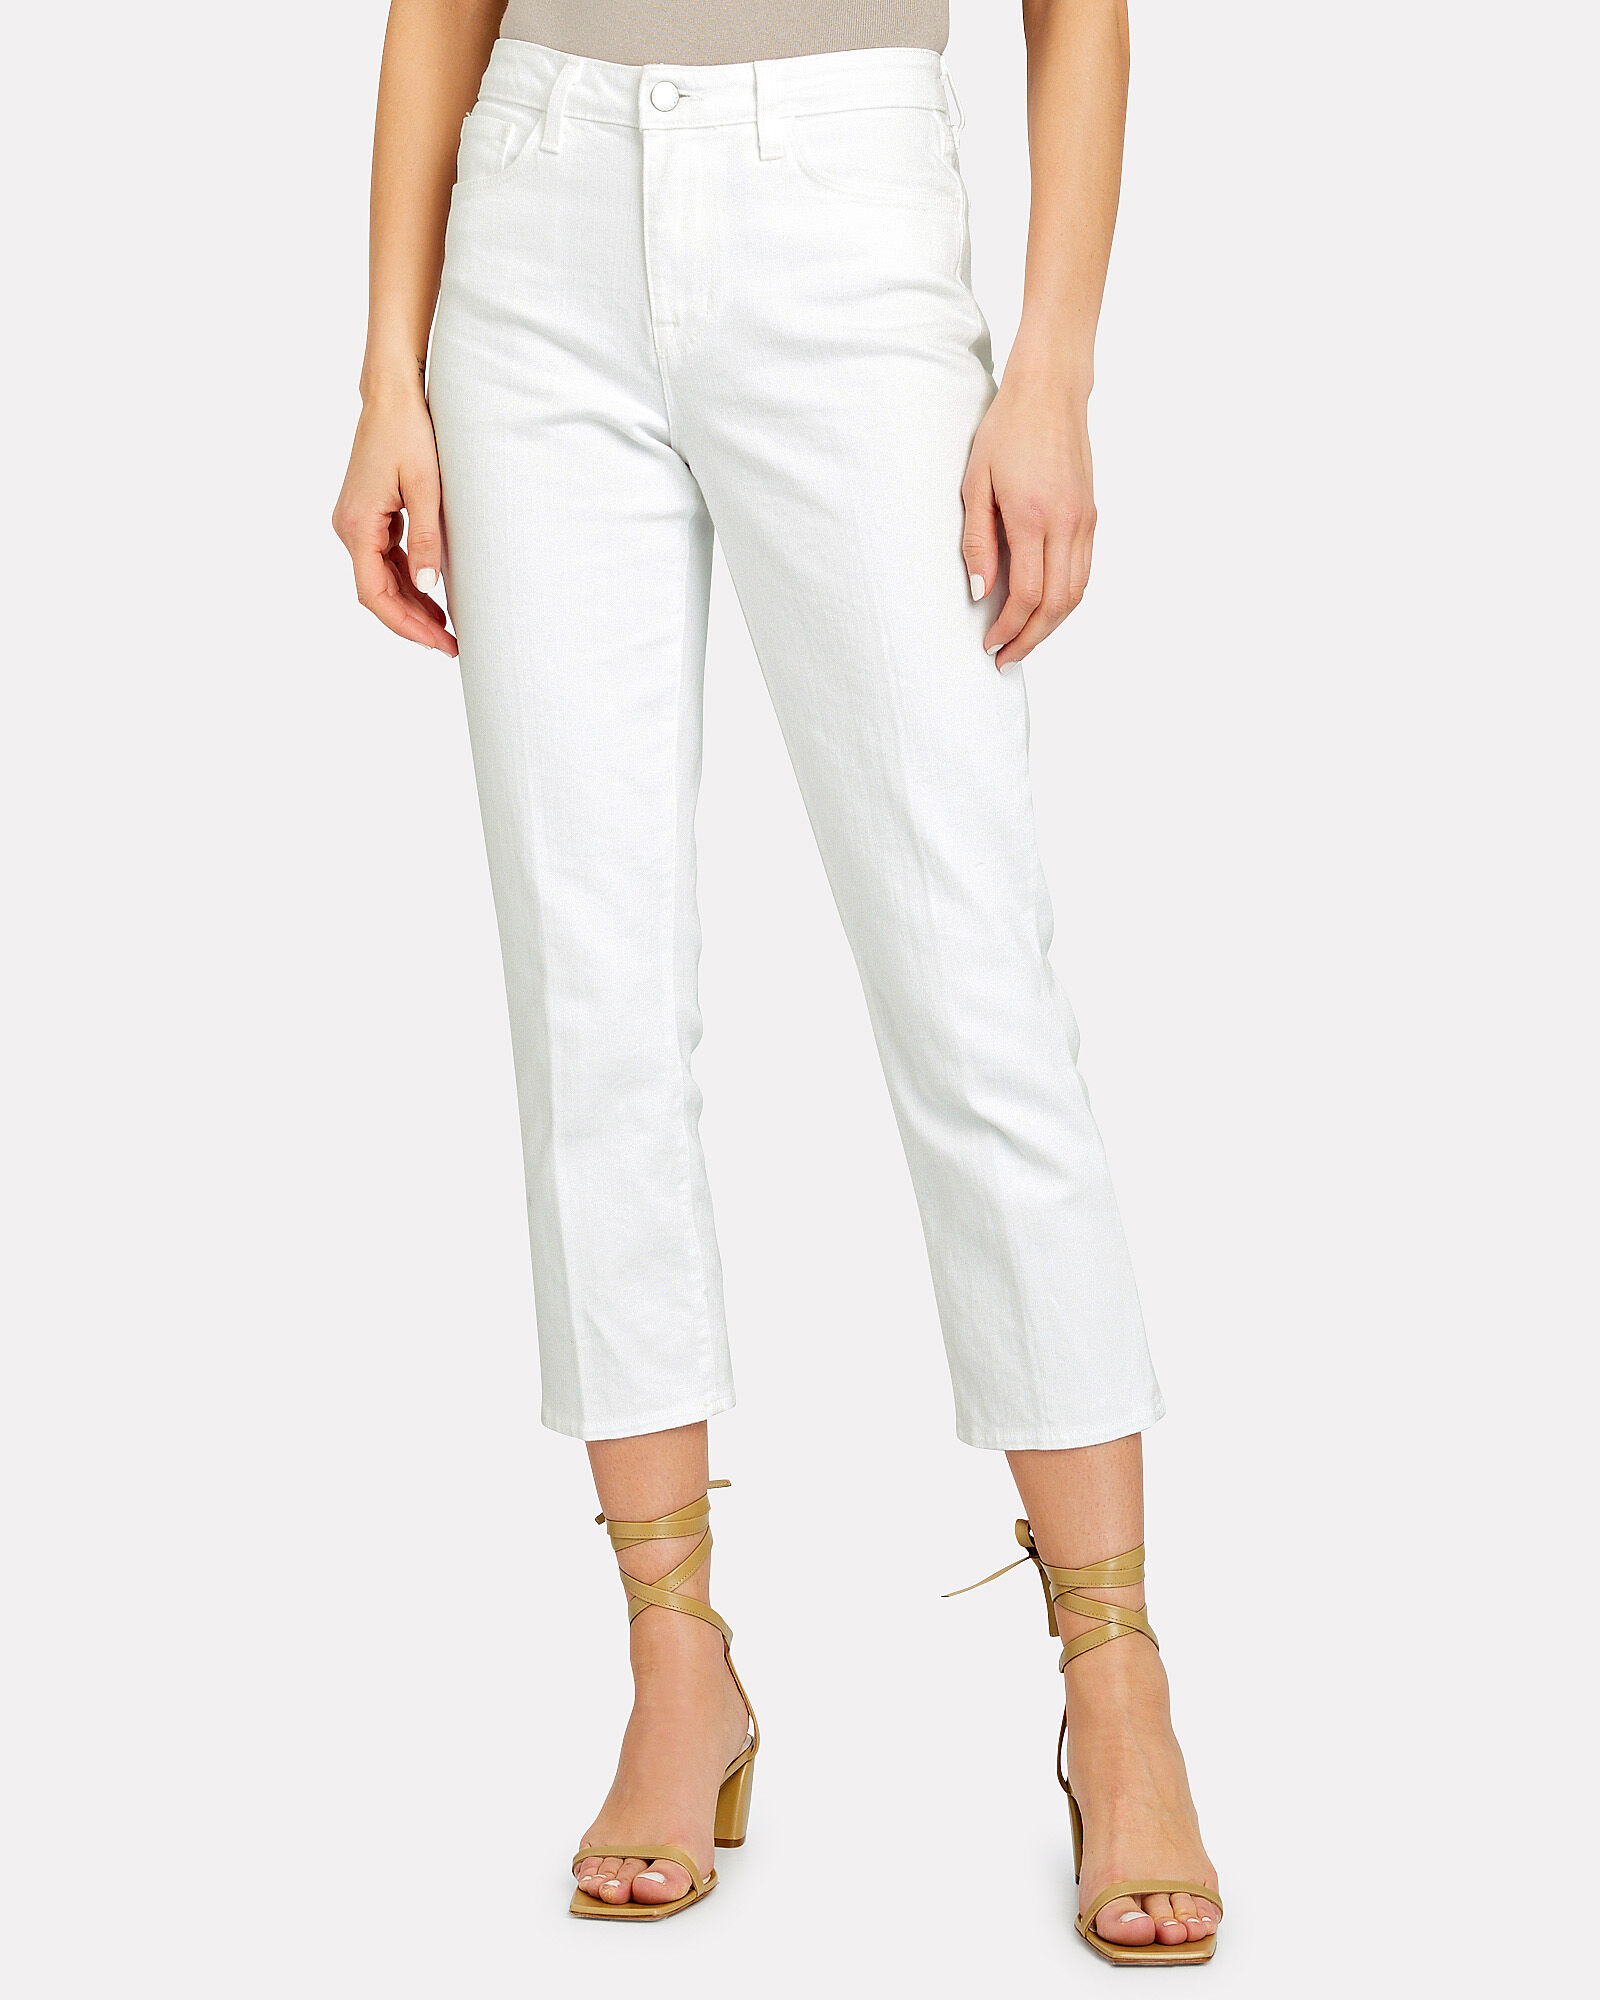 Nadia Cropped High-Rise Jeans, WHITE, hi-res